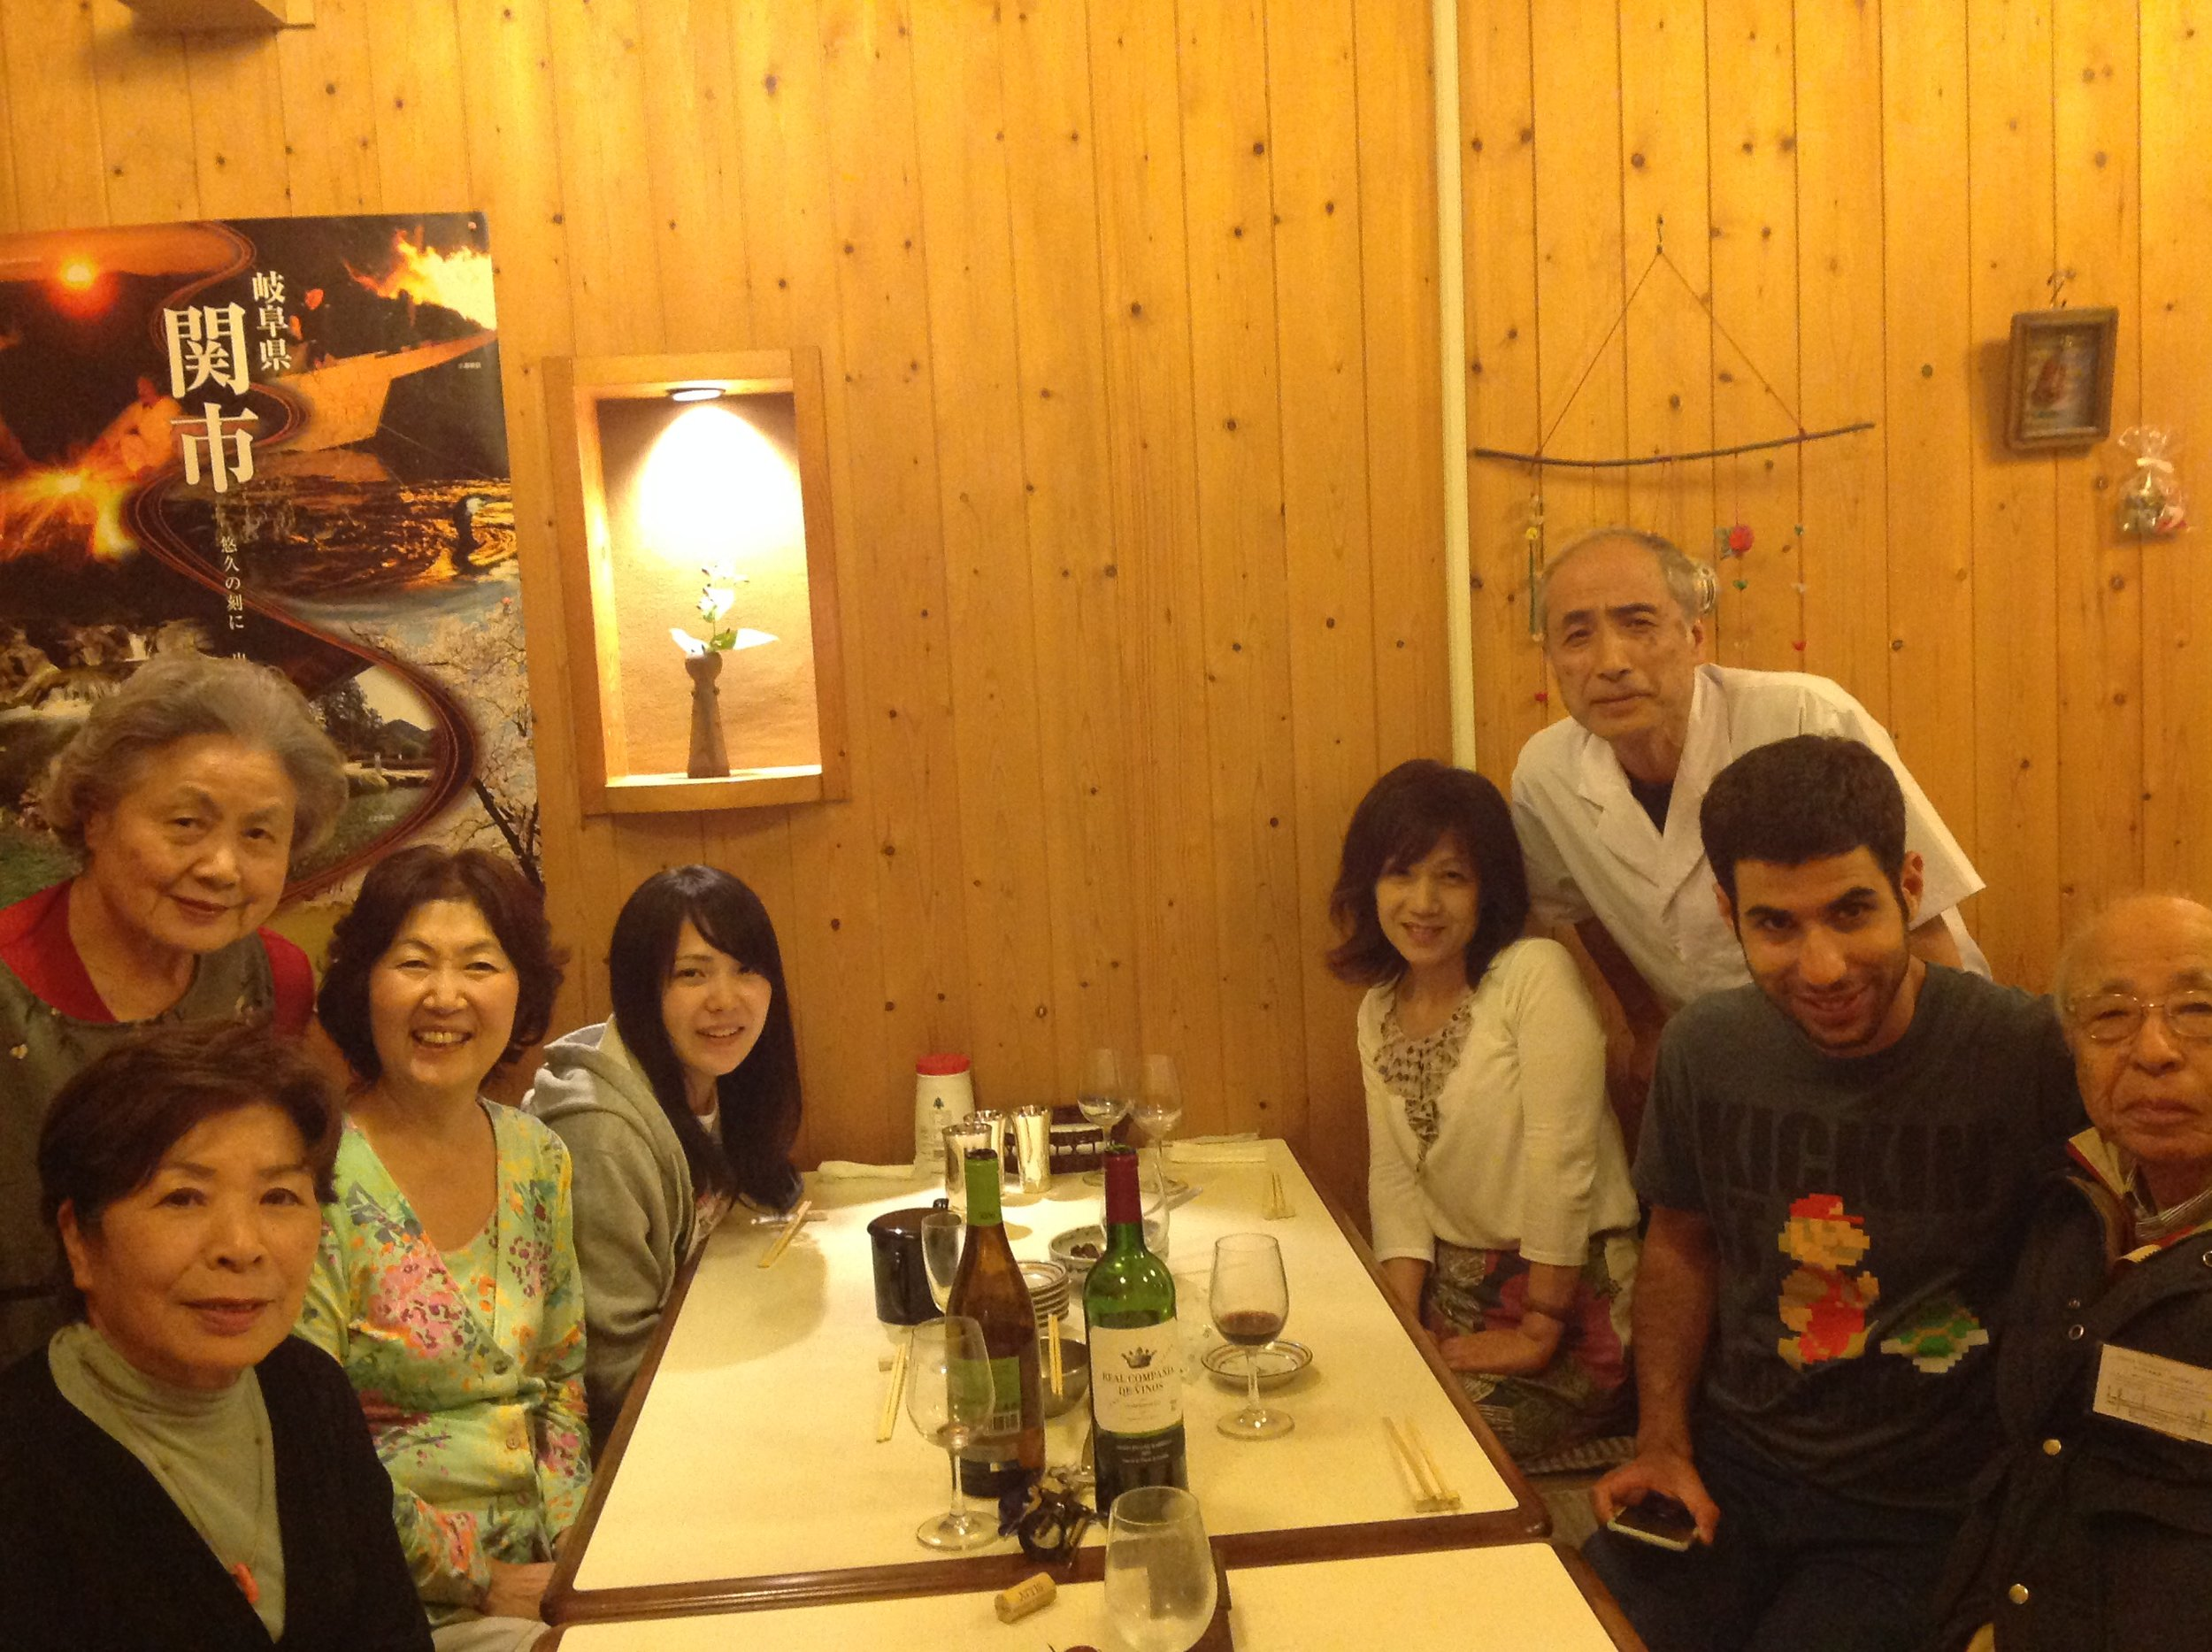 Ido and Shuji join in their dinner guests.